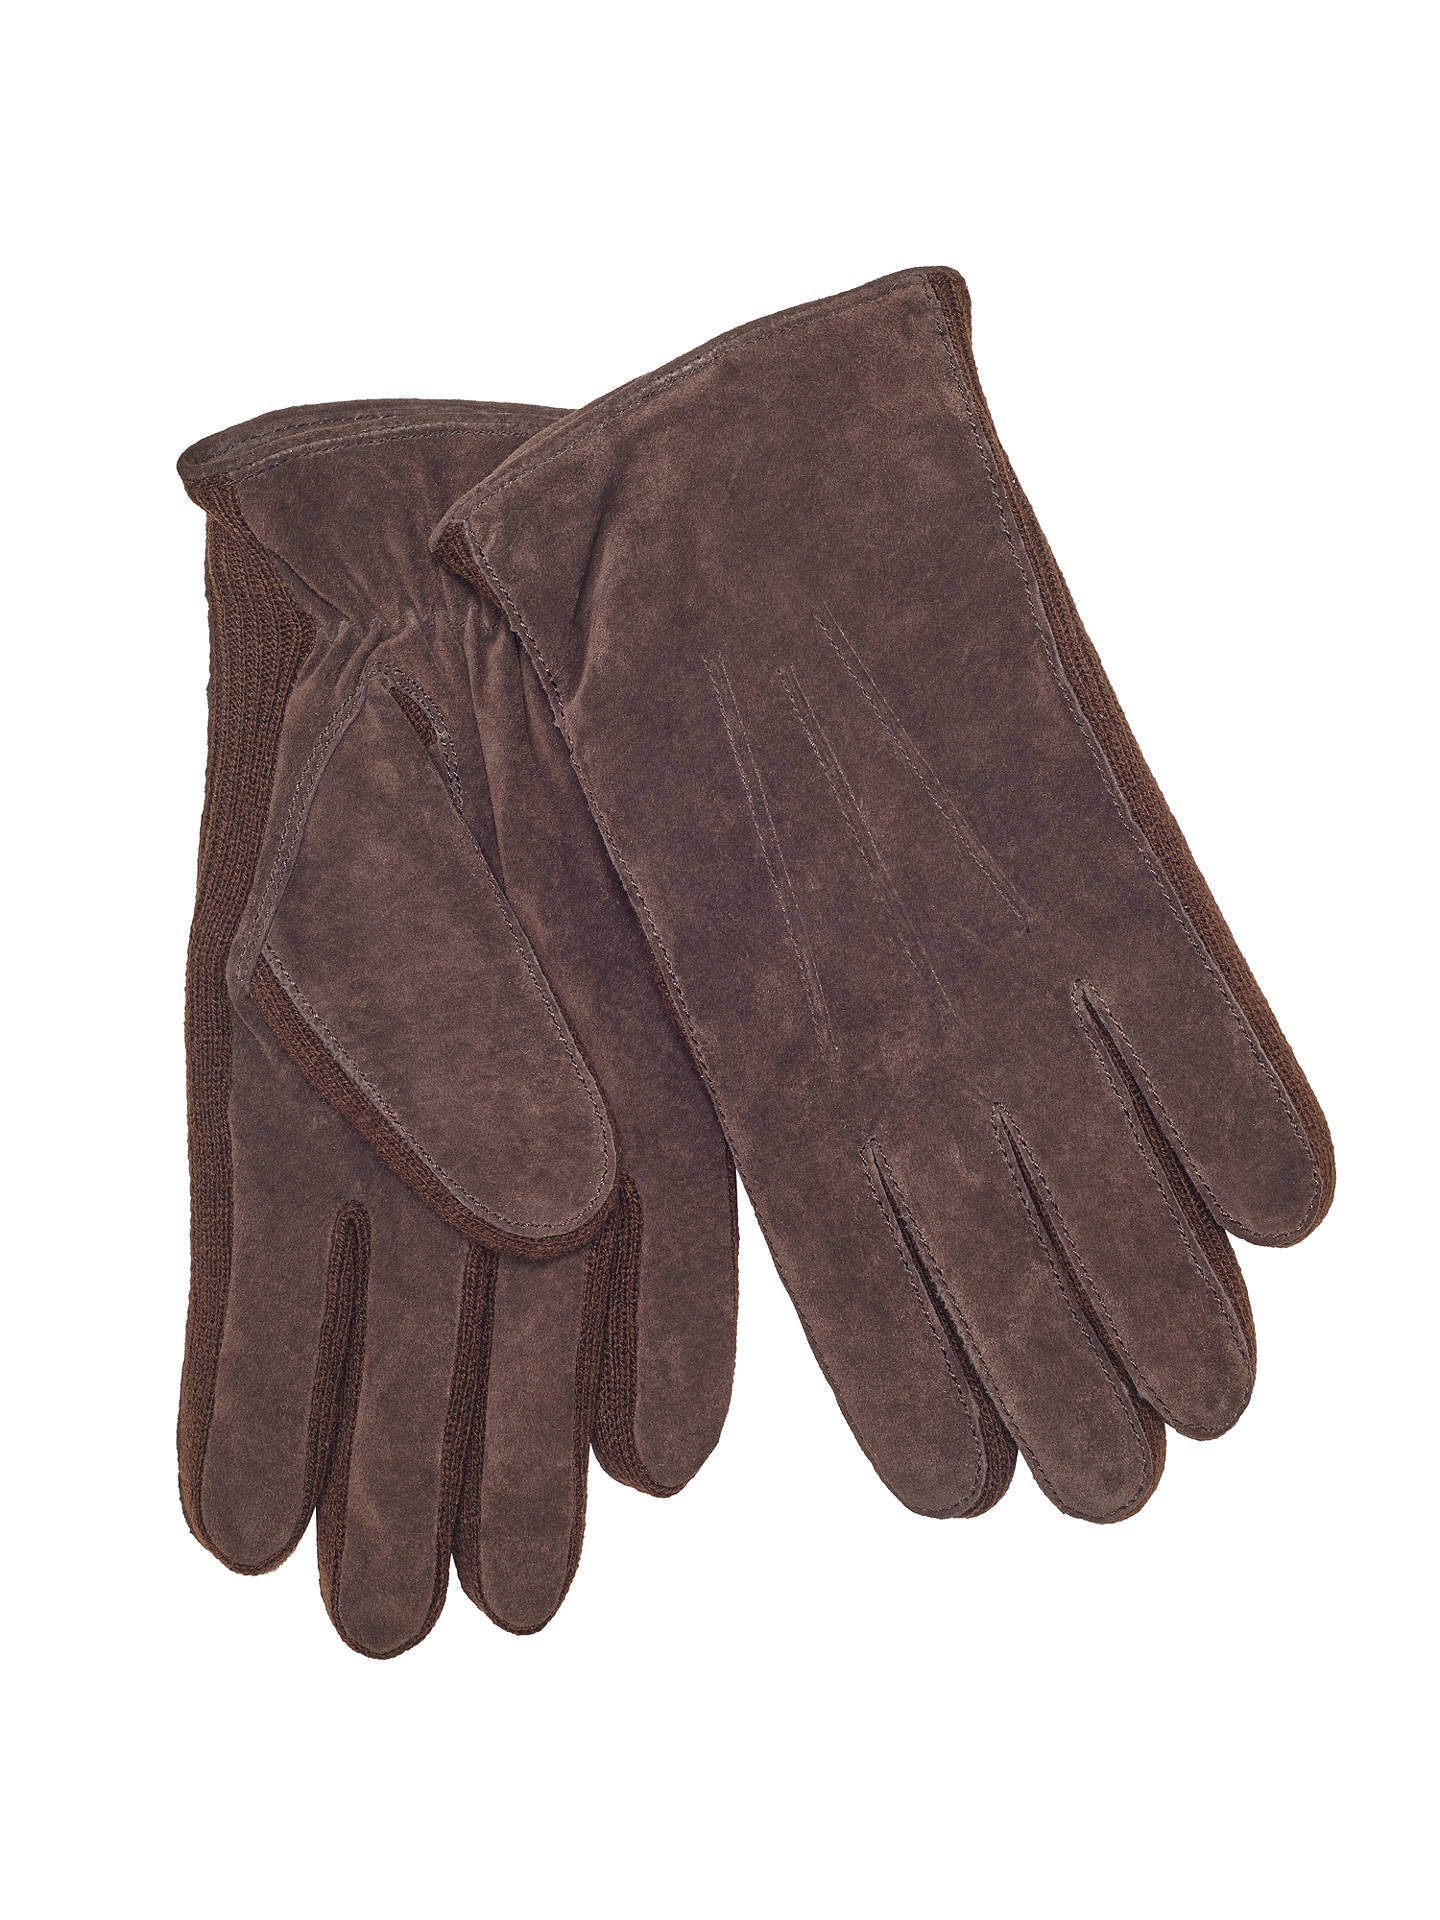 BuyJohn Lewis & Partners Suede Sandwich Top Stitch Gloves, Brown, M Online at johnlewis.com